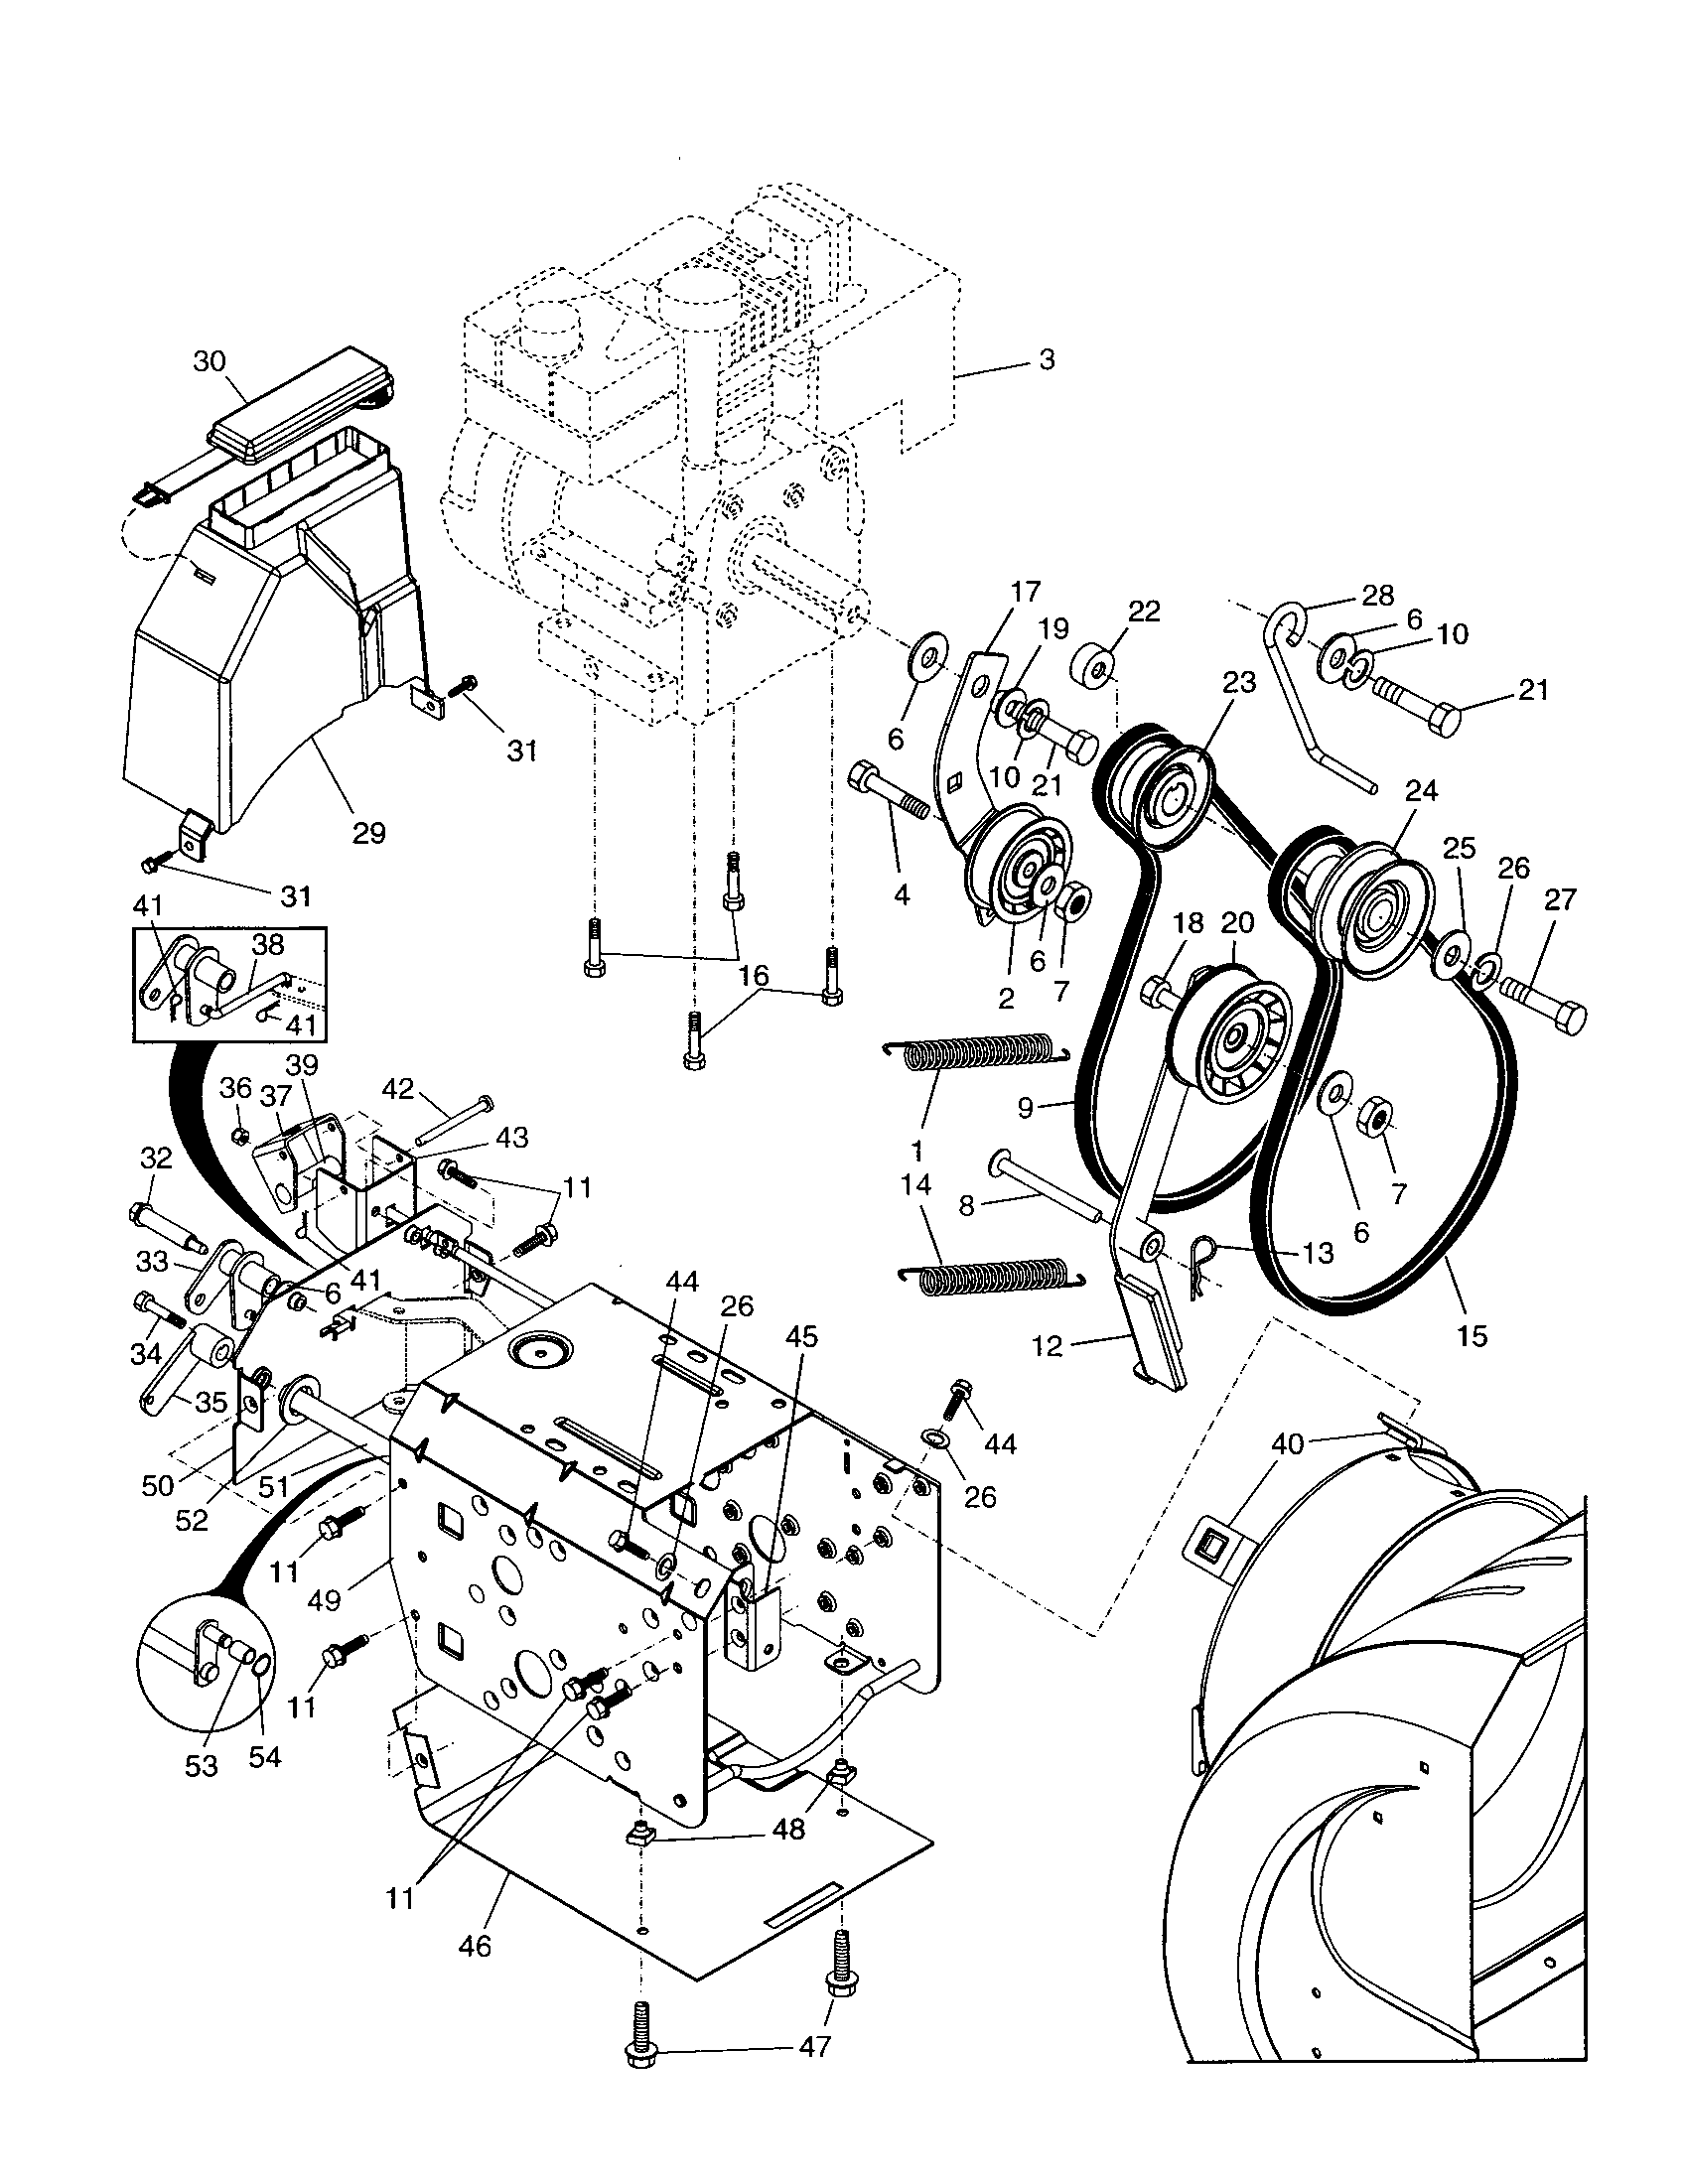 Kenwood 16 Pin Wiring Harness Diagram : 37 Wiring Diagram